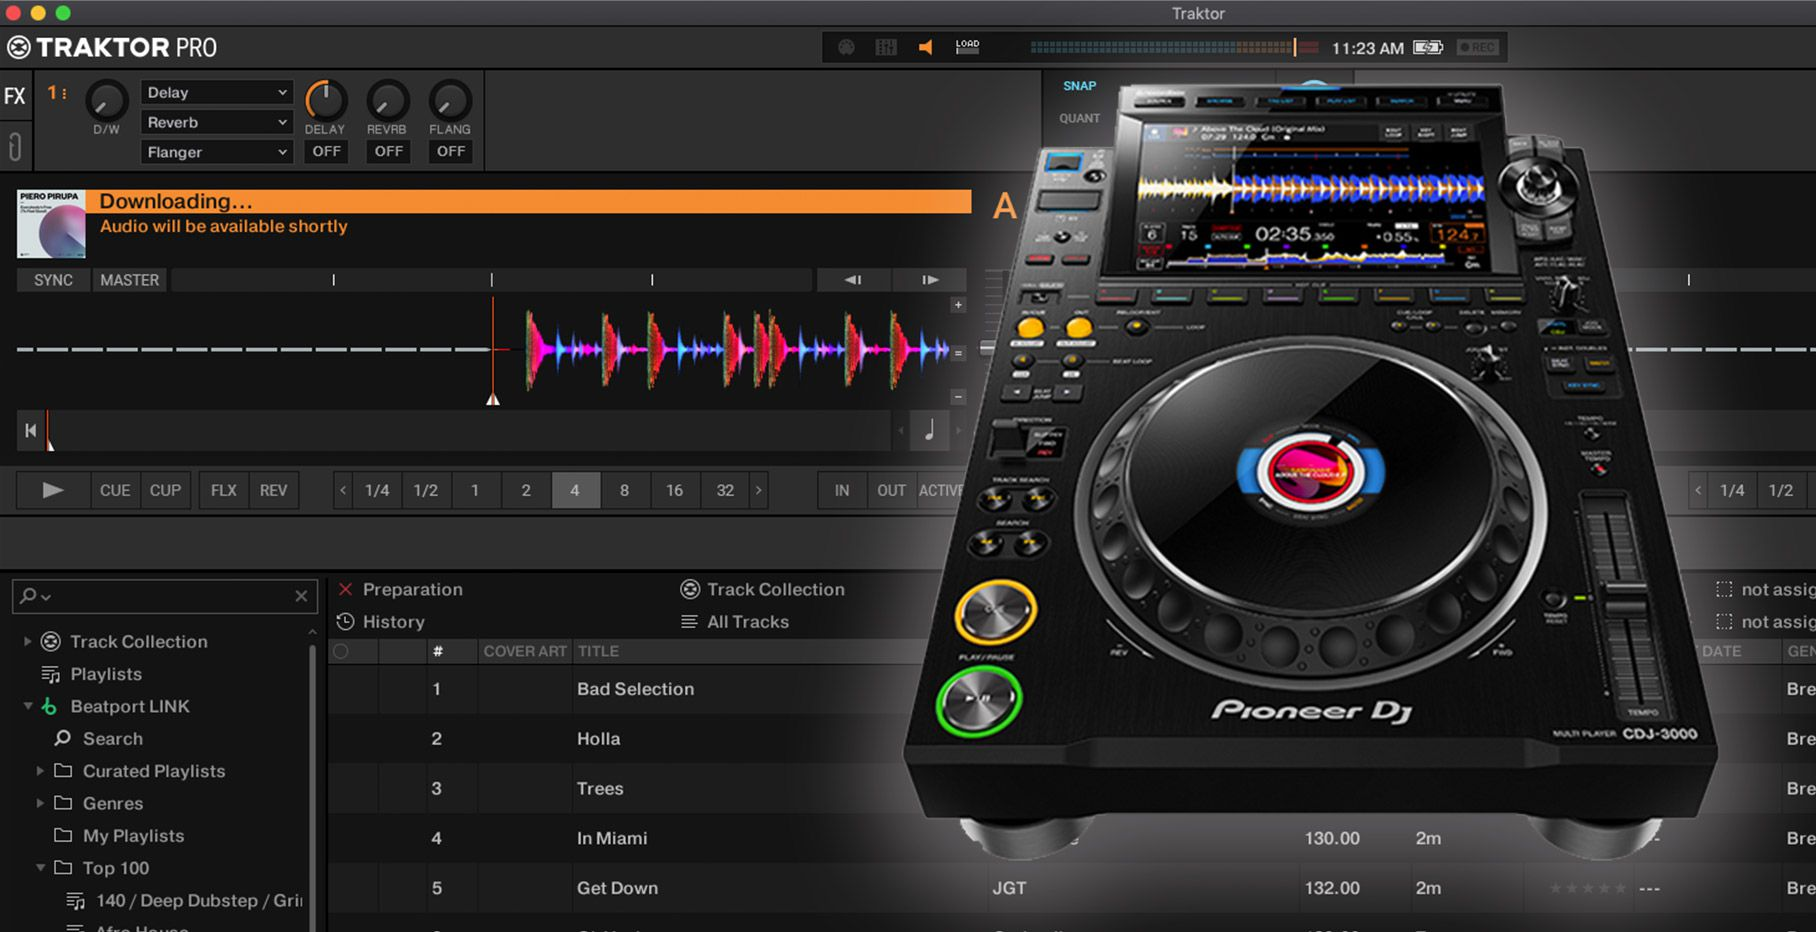 Traktor Pro 3.5 with streaming and CDJ-3000 HID integration